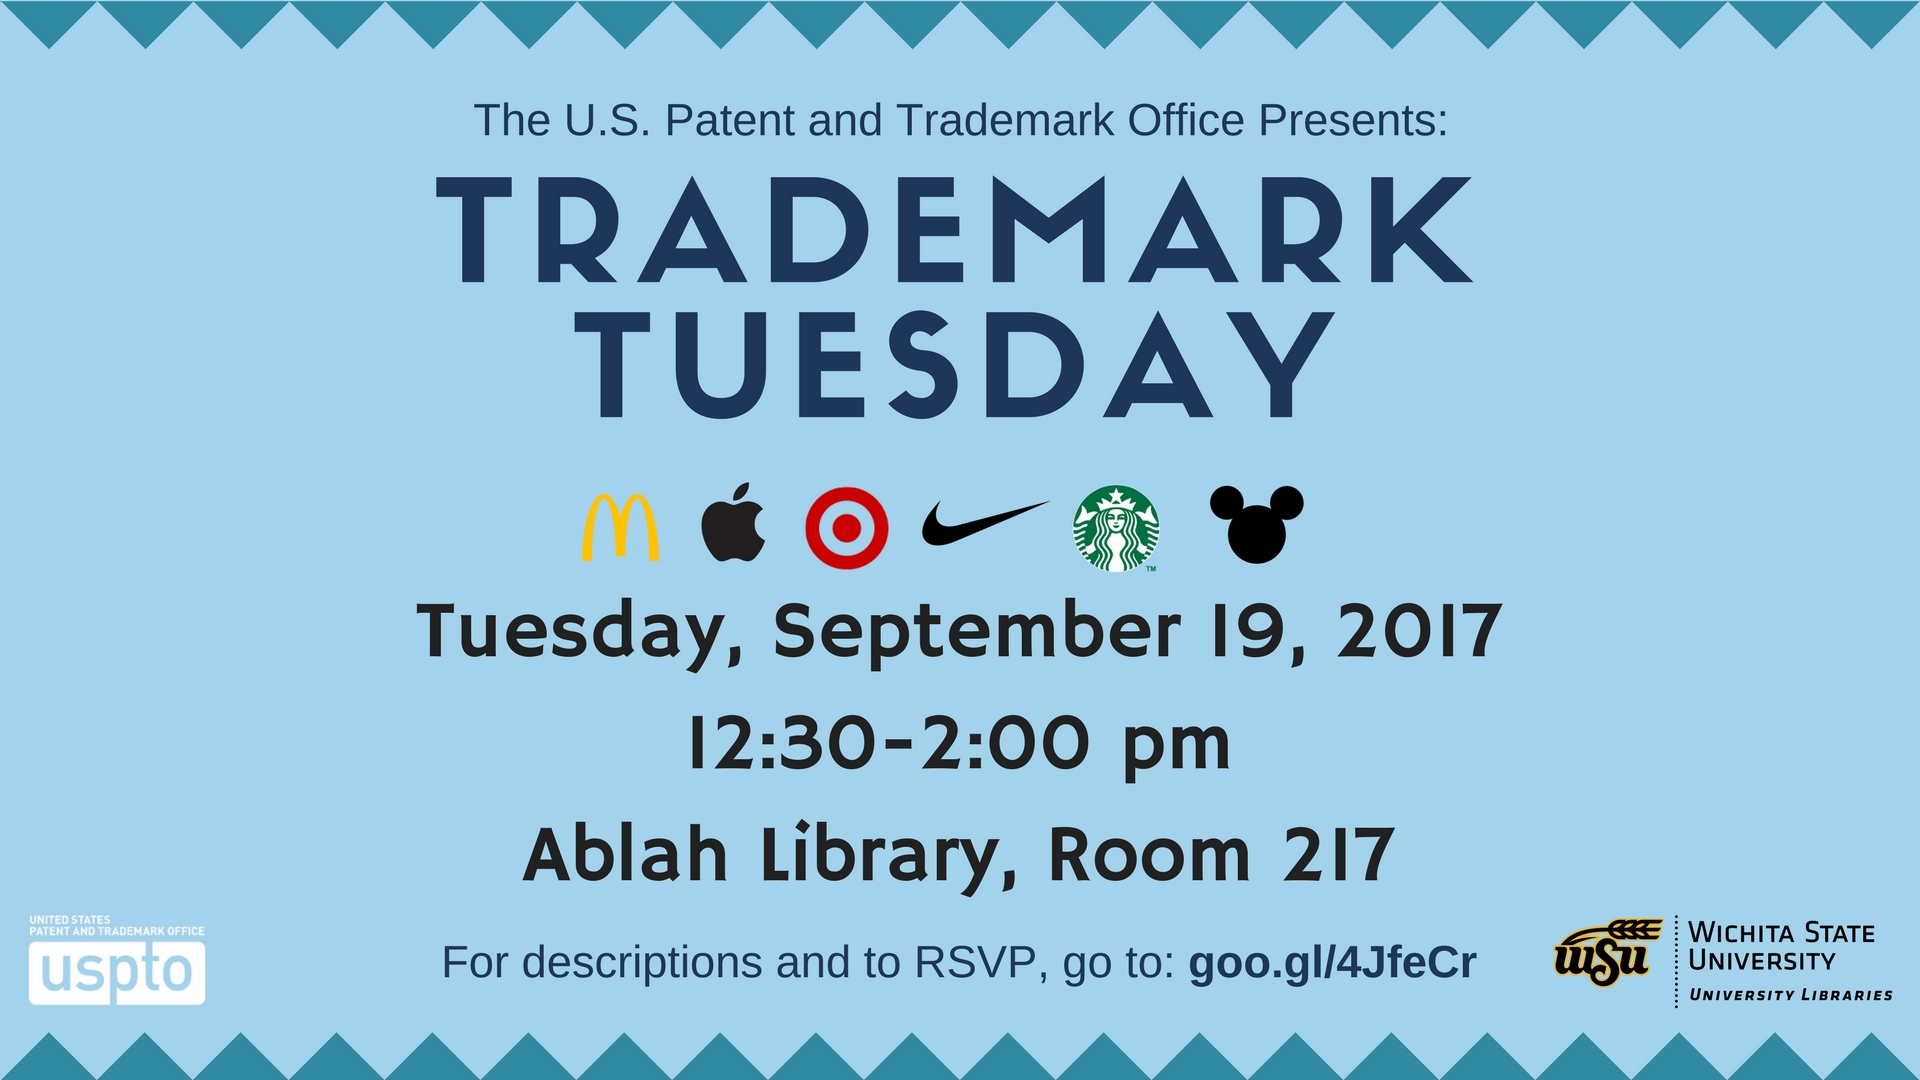 Quarterly Trademark Tuesday Program